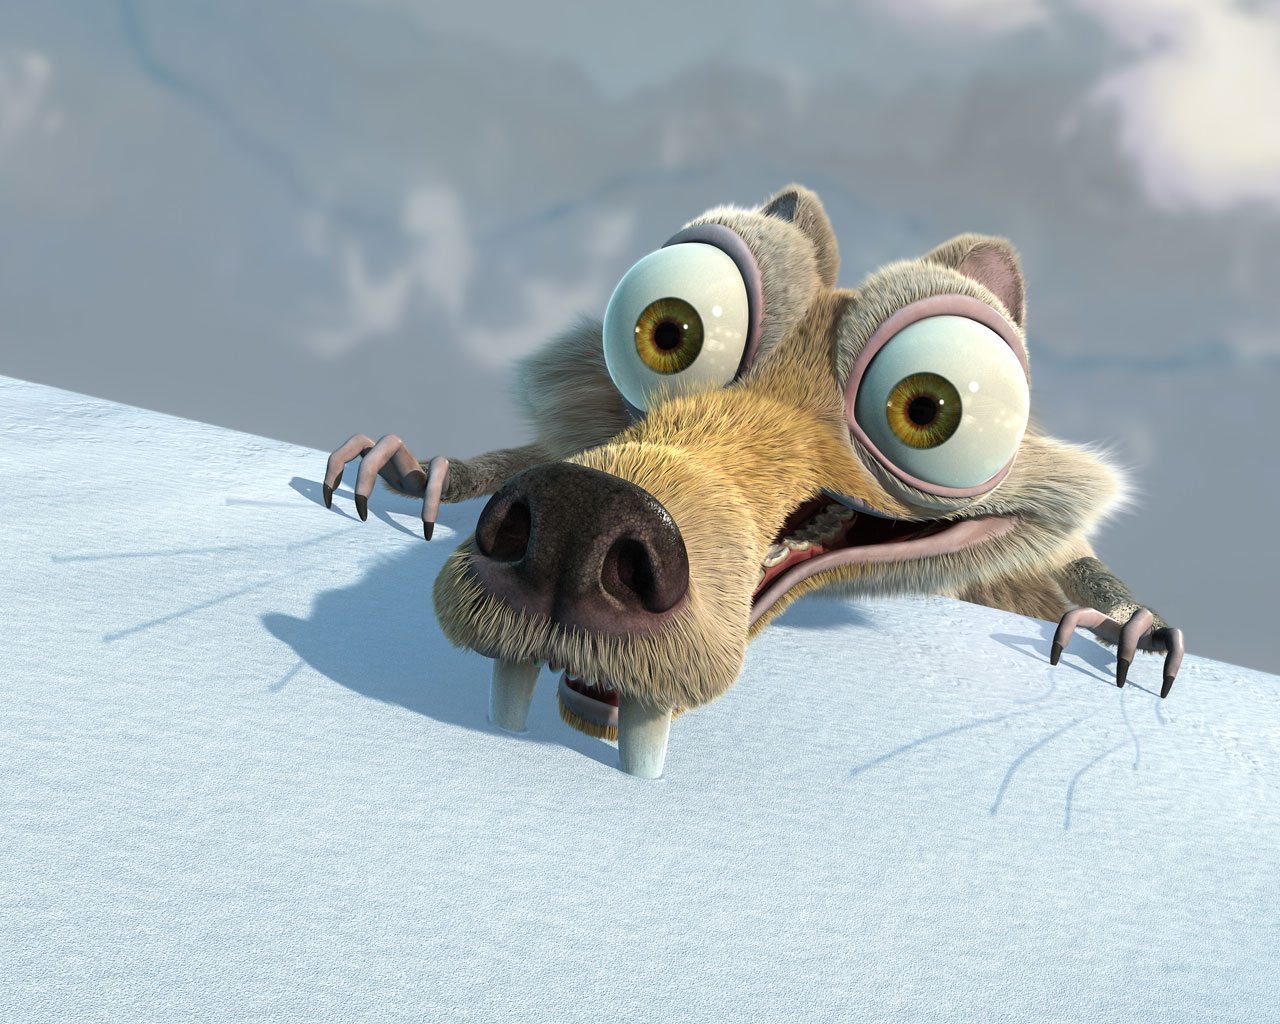 It's just a photo of Monster Ice Age Pictures